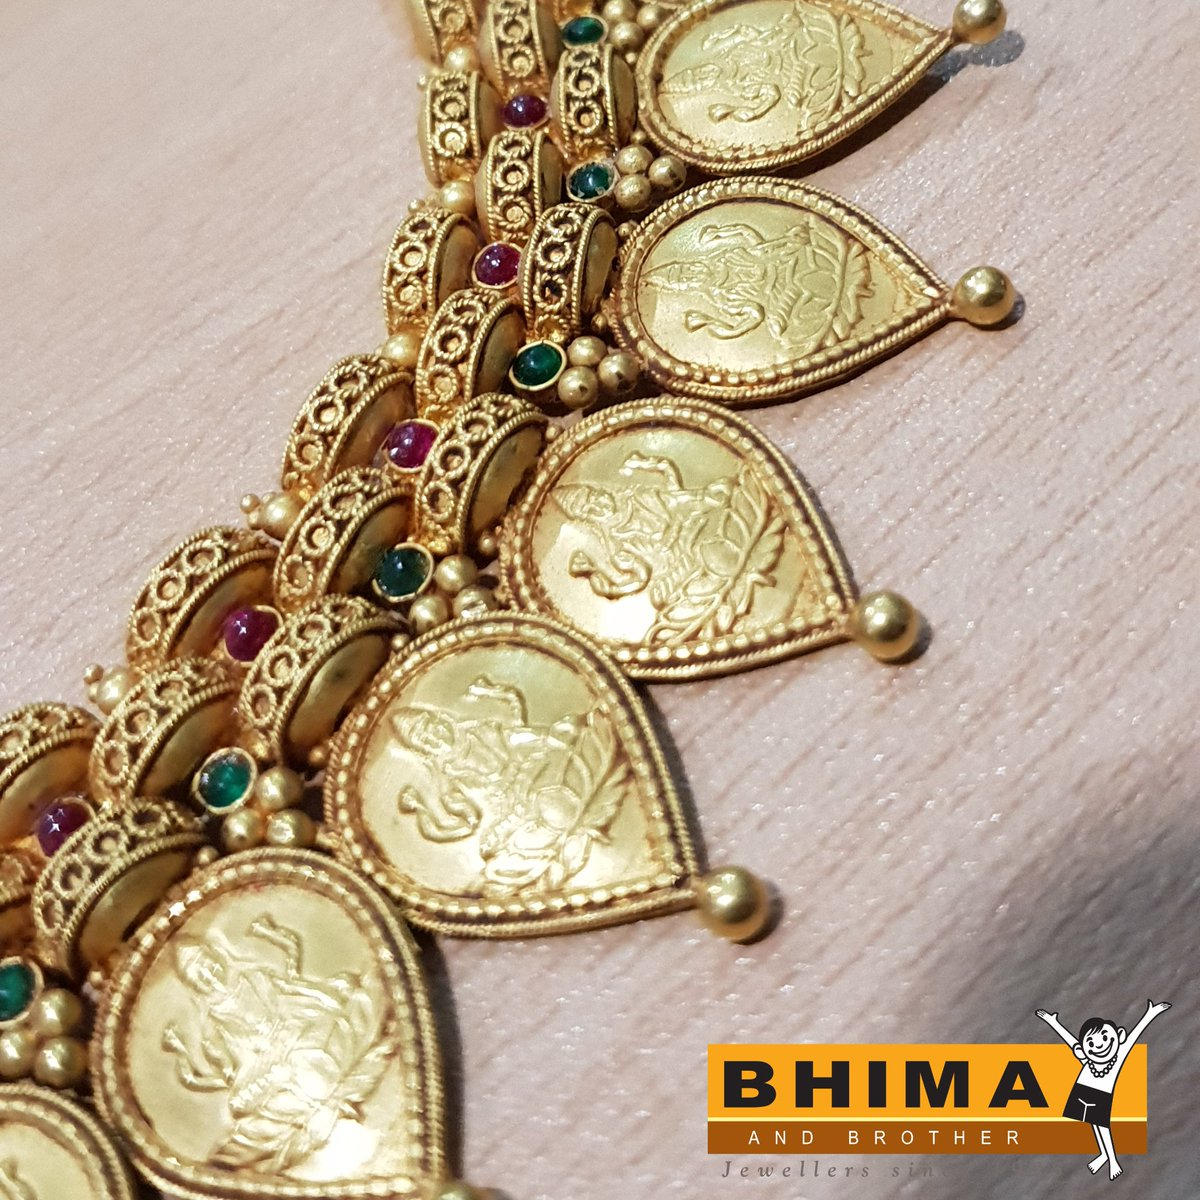 Bhima Jewellery On Twitter This Version Of Our Lakshmi Mala Is